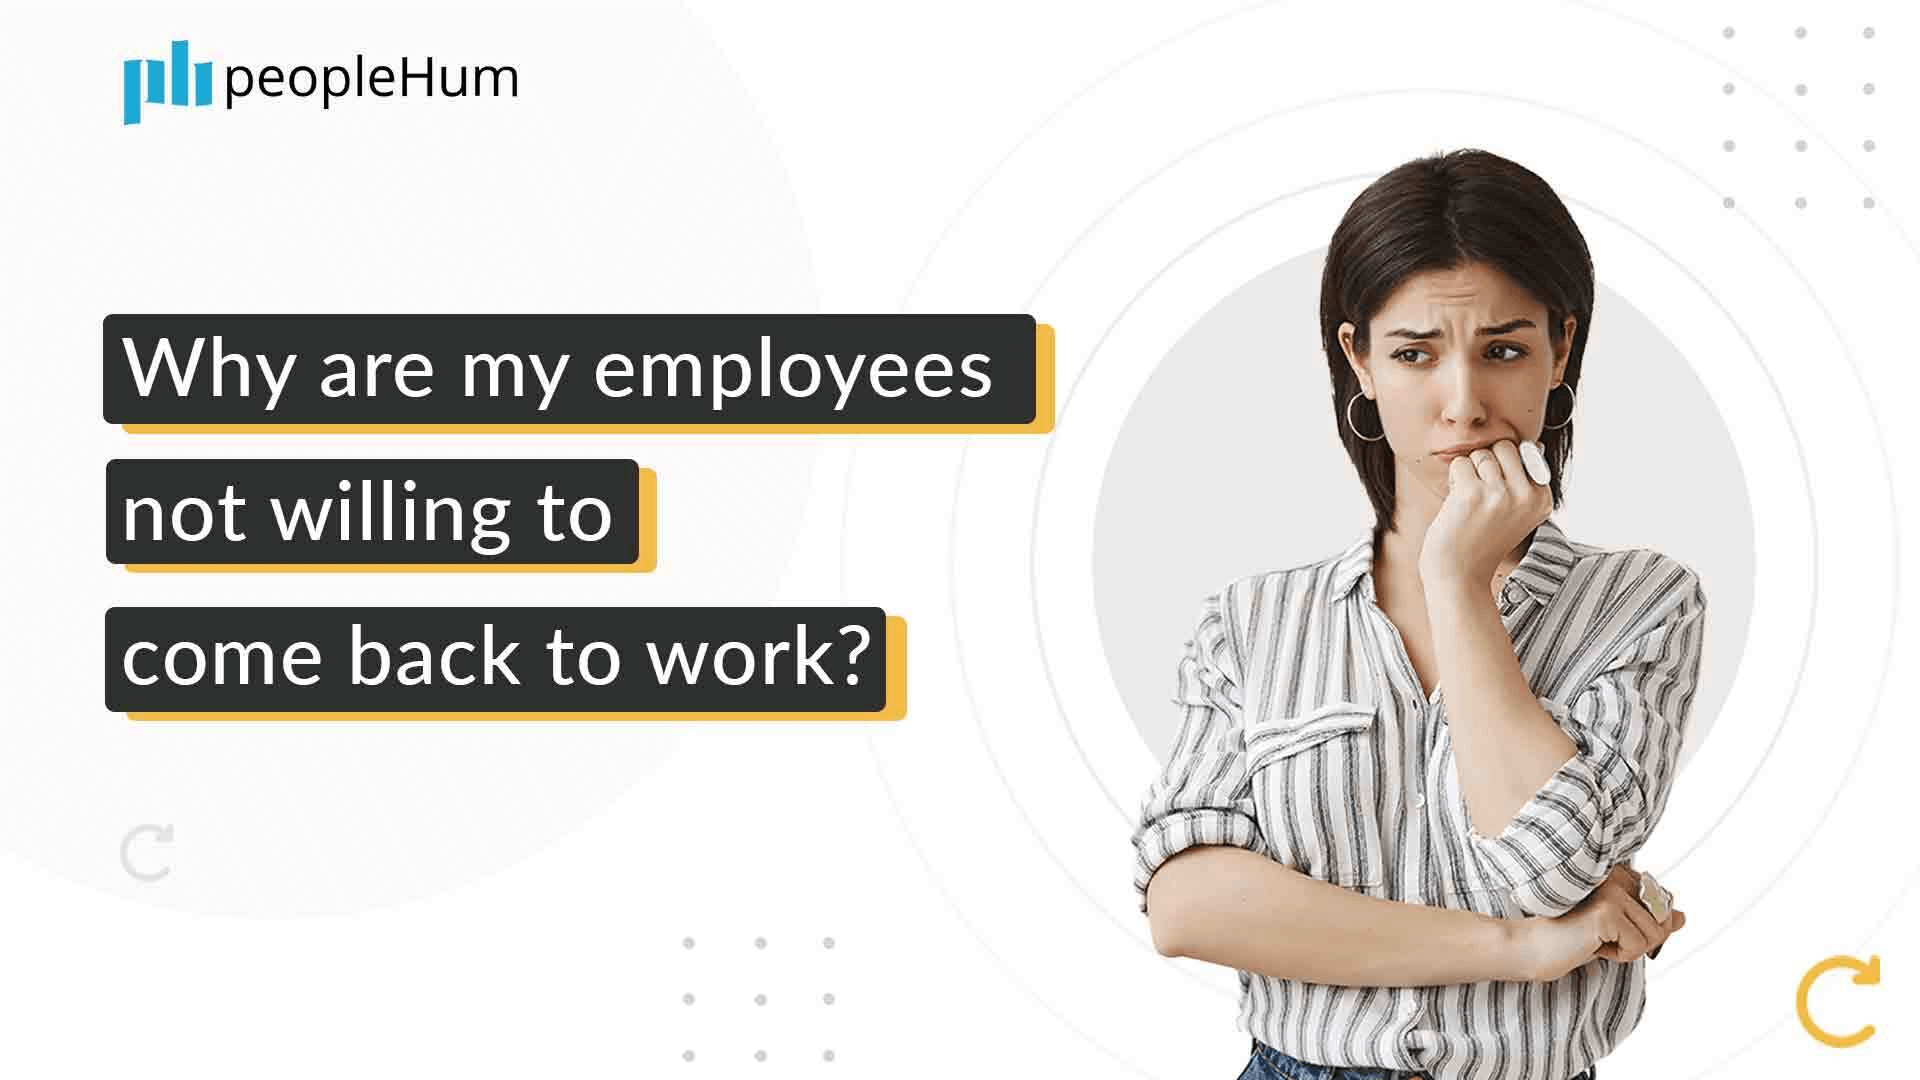 Why are my employees not willing to come back to work?